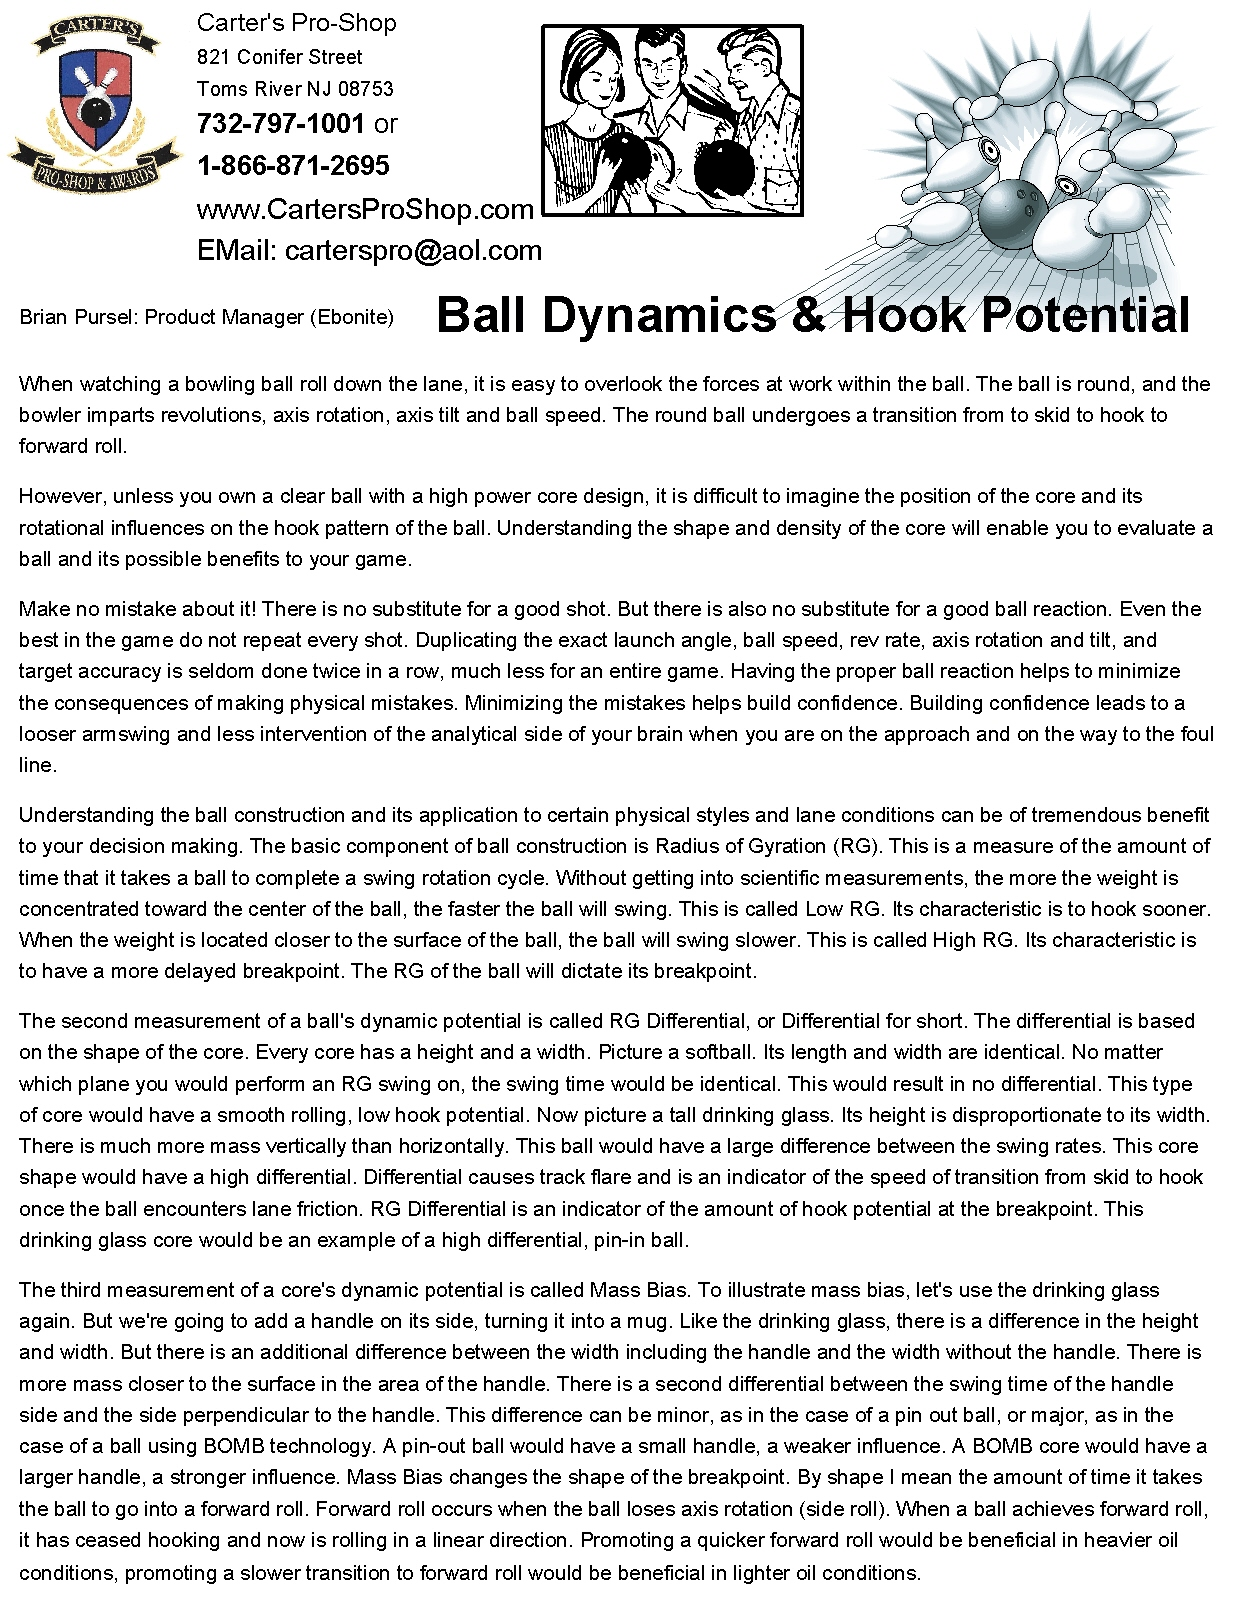 Ball Dynamics Hook Potential